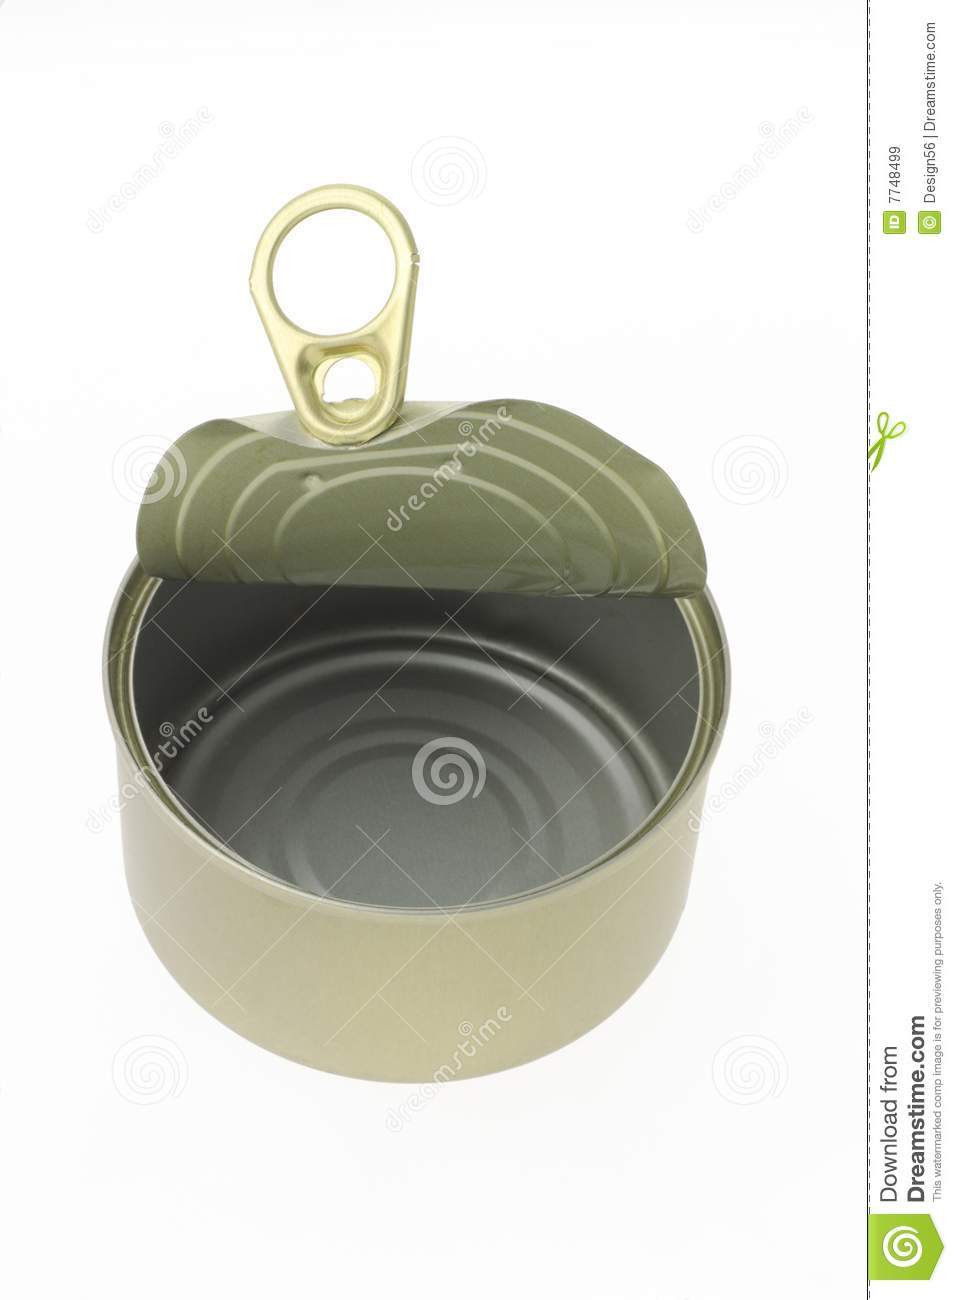 Empty Tin Can Stock Photography: Empty Tin Can Stock Image. Image Of White, Isolated, Metal